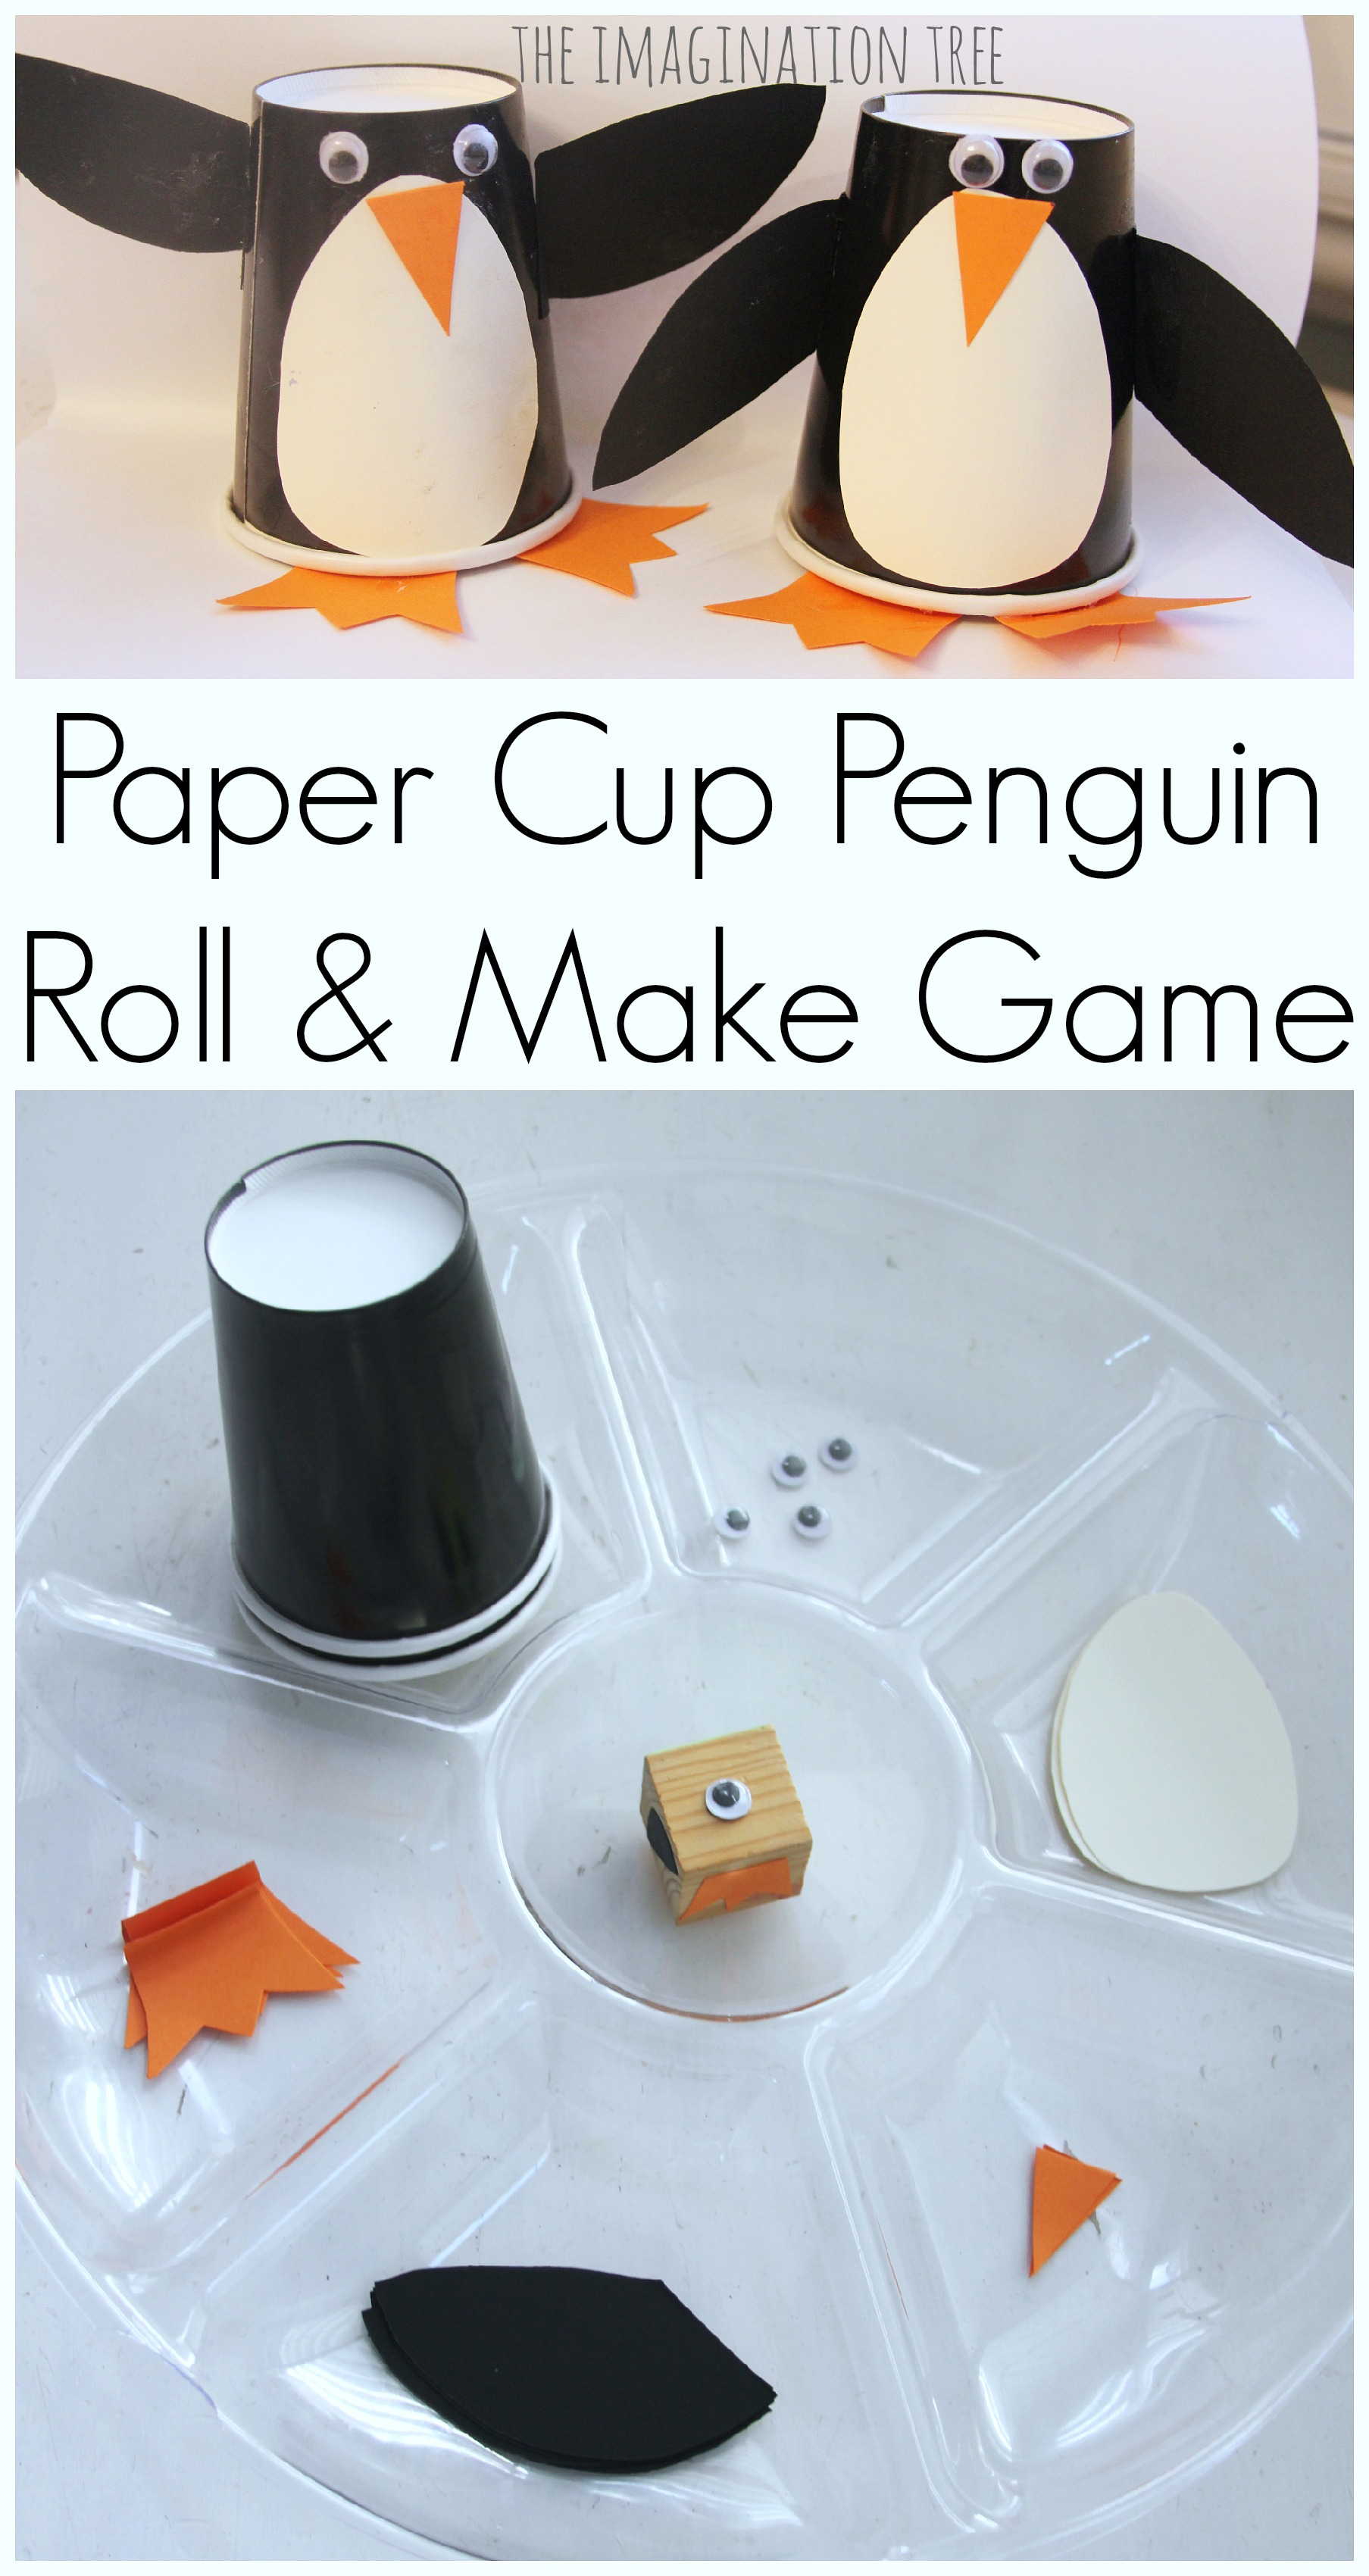 paper cup penguin craft roll and make game - the imagination tree